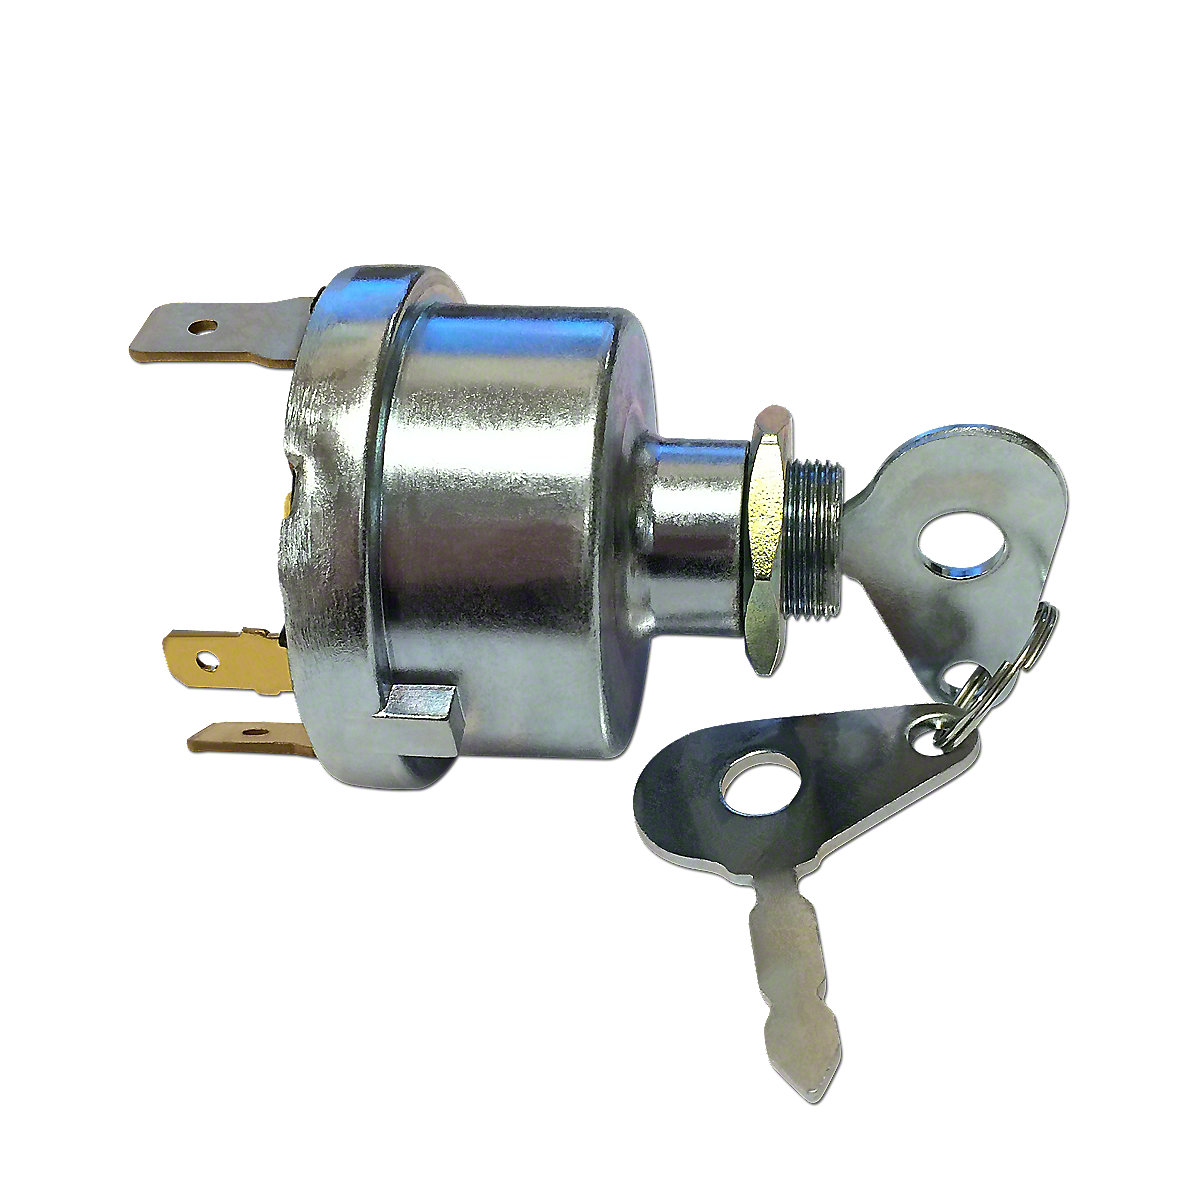 Wiring A Toggle Switch Ignition Top 3 Position Switch Manual Guide